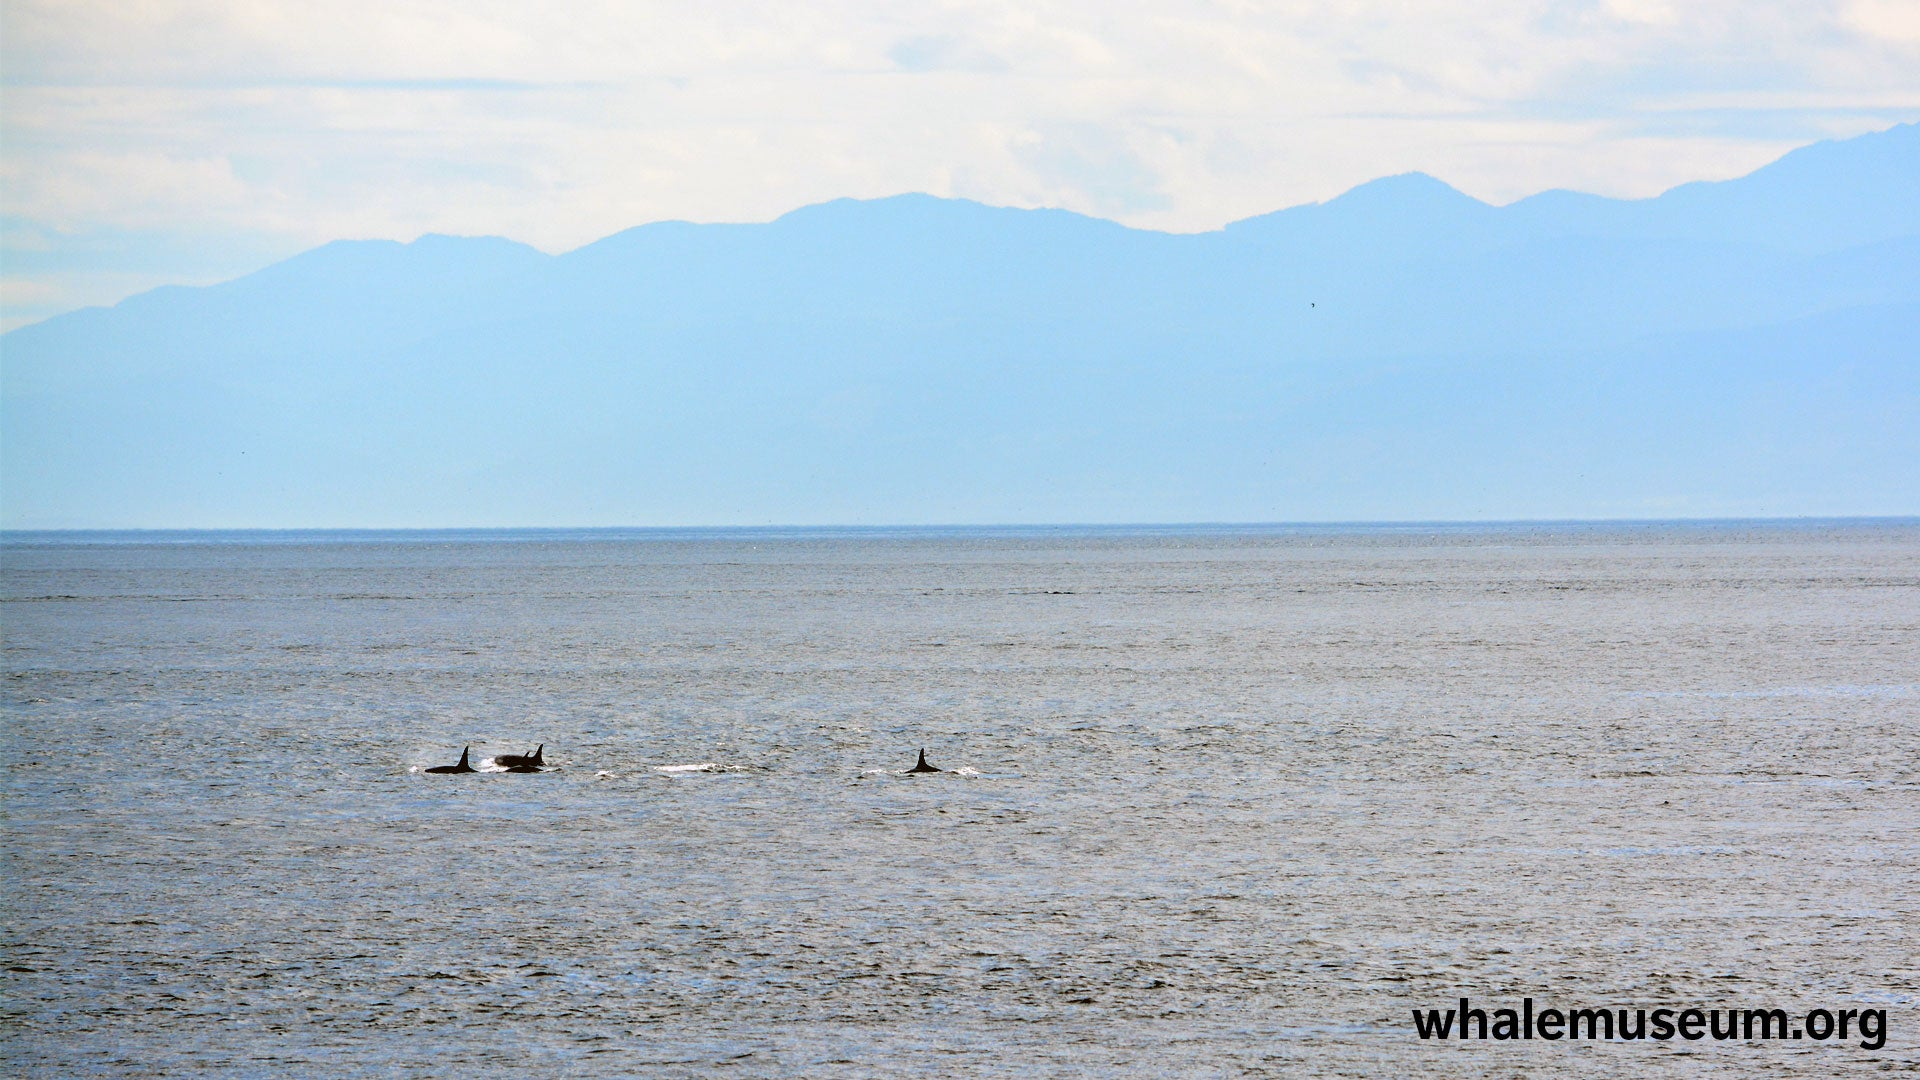 Olympic Orcas Background